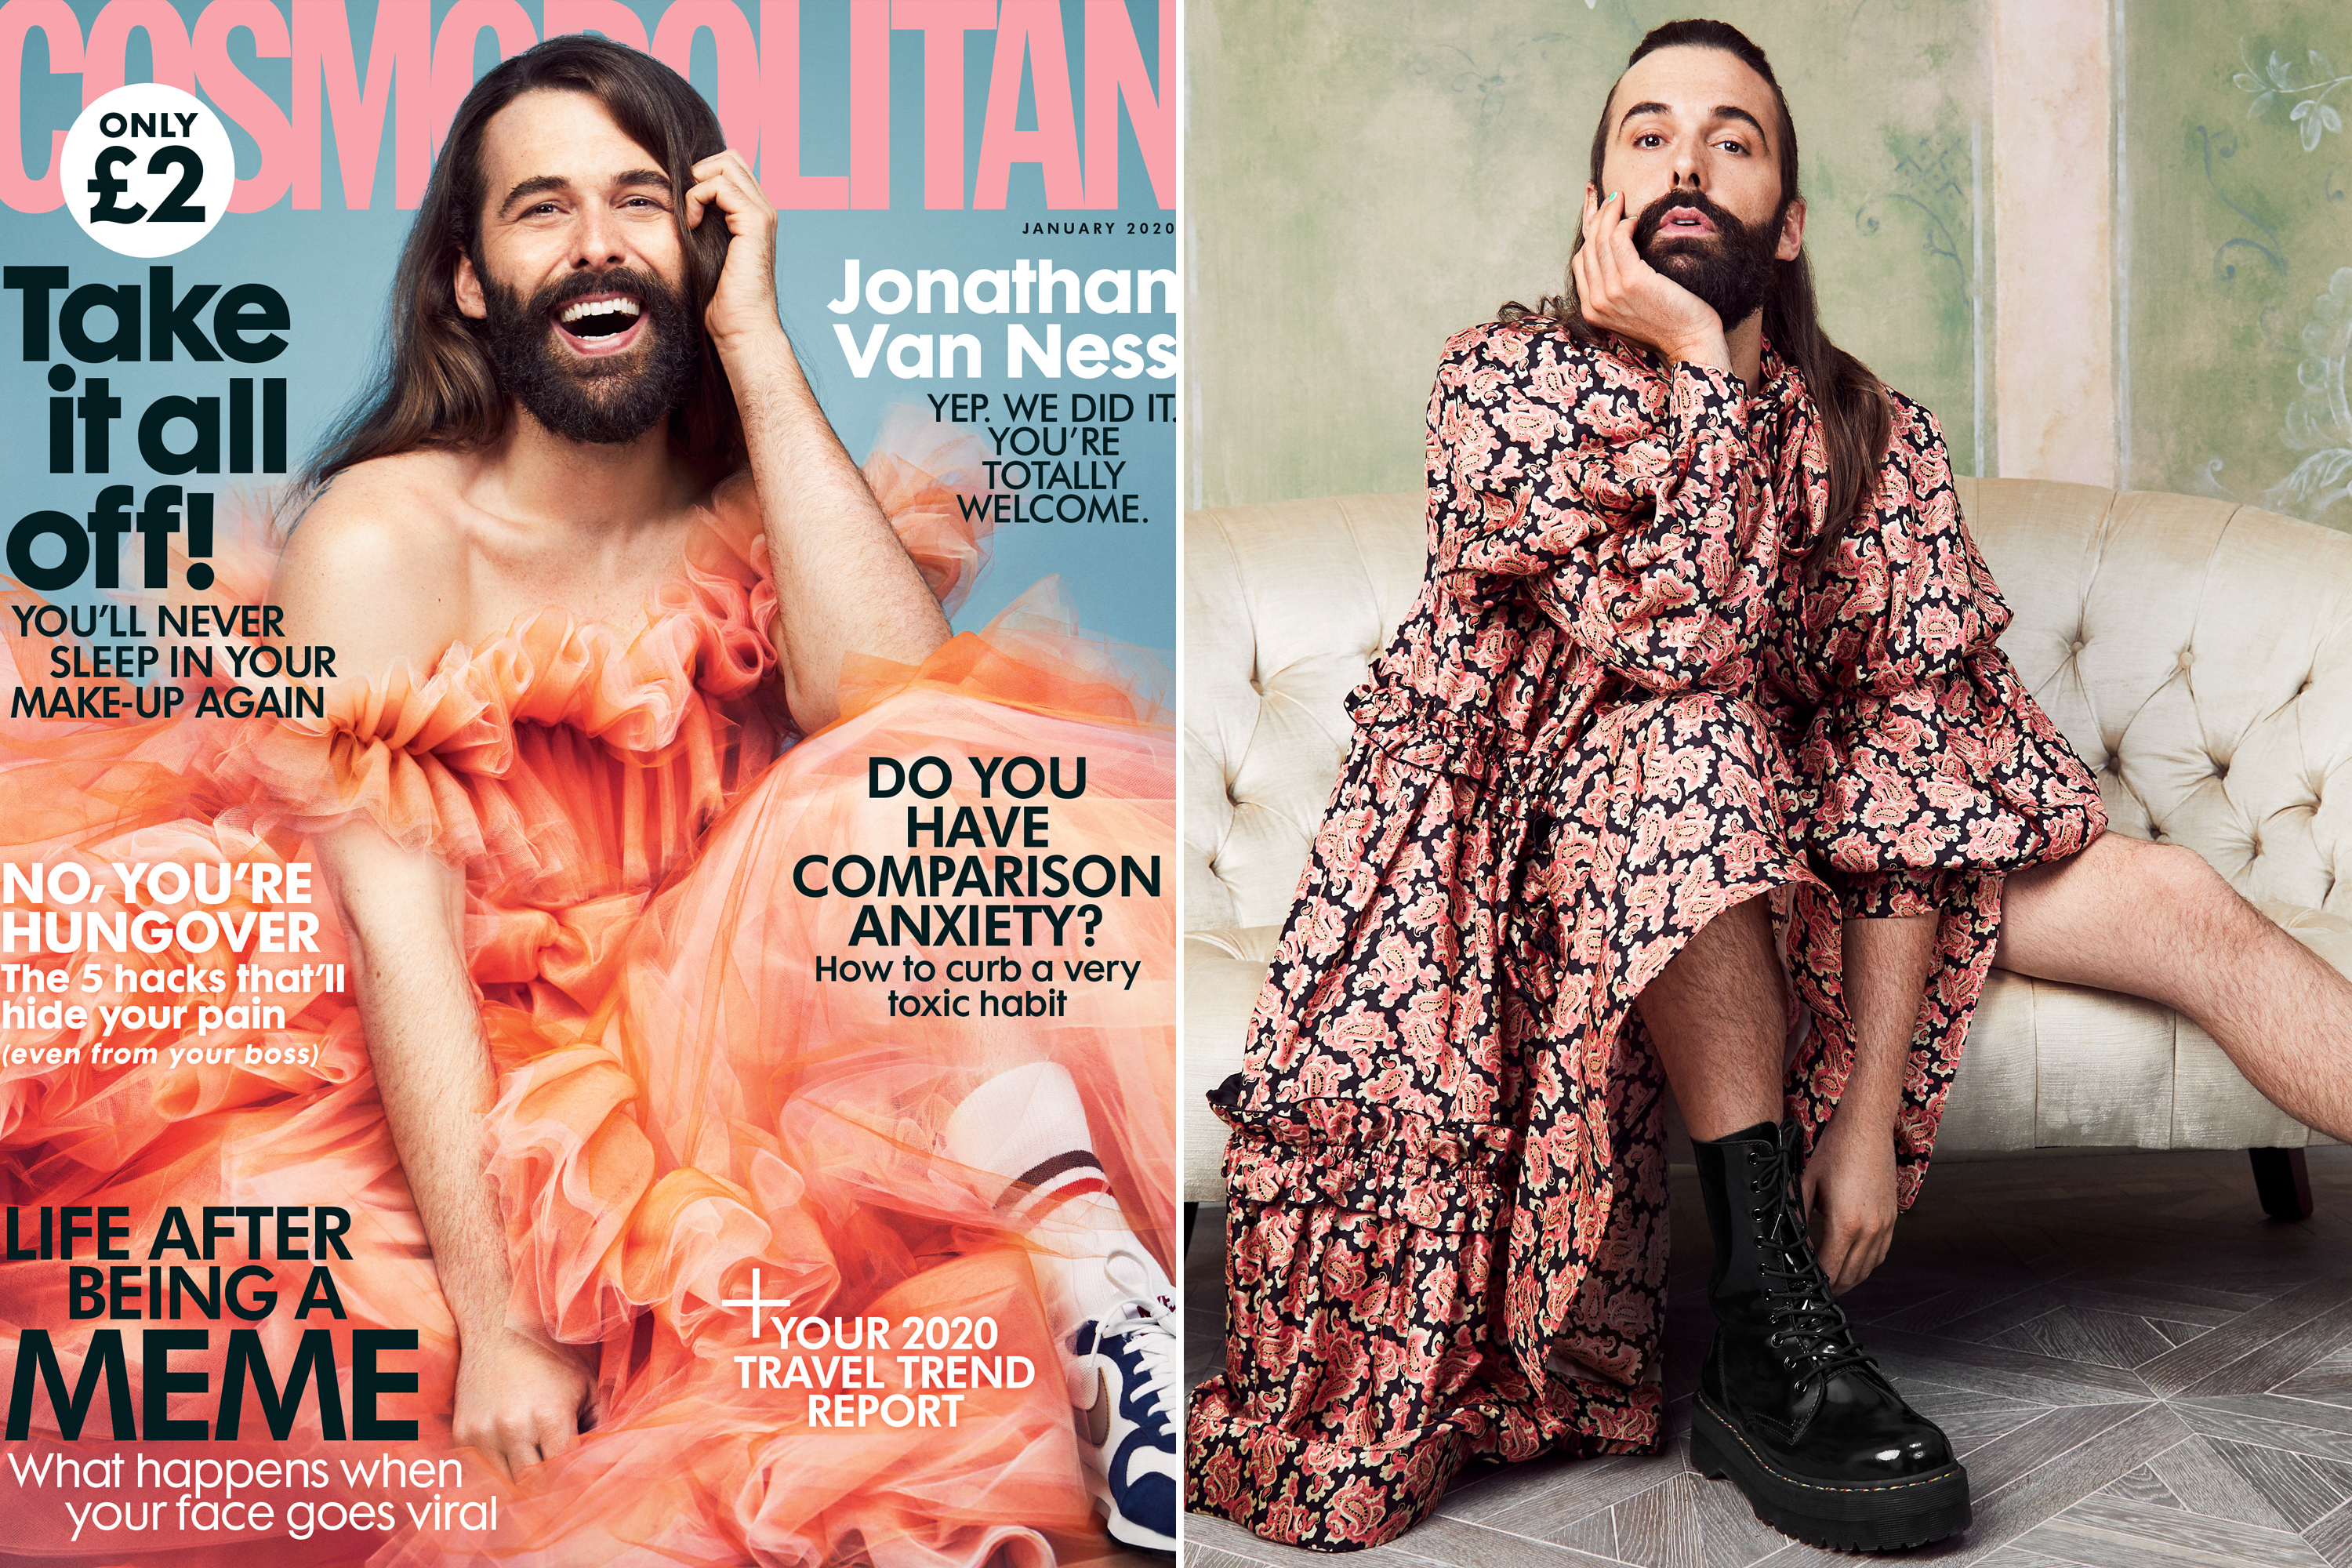 Cosmo puts 'Queer Eye' star Jonathan Van Ness on cover